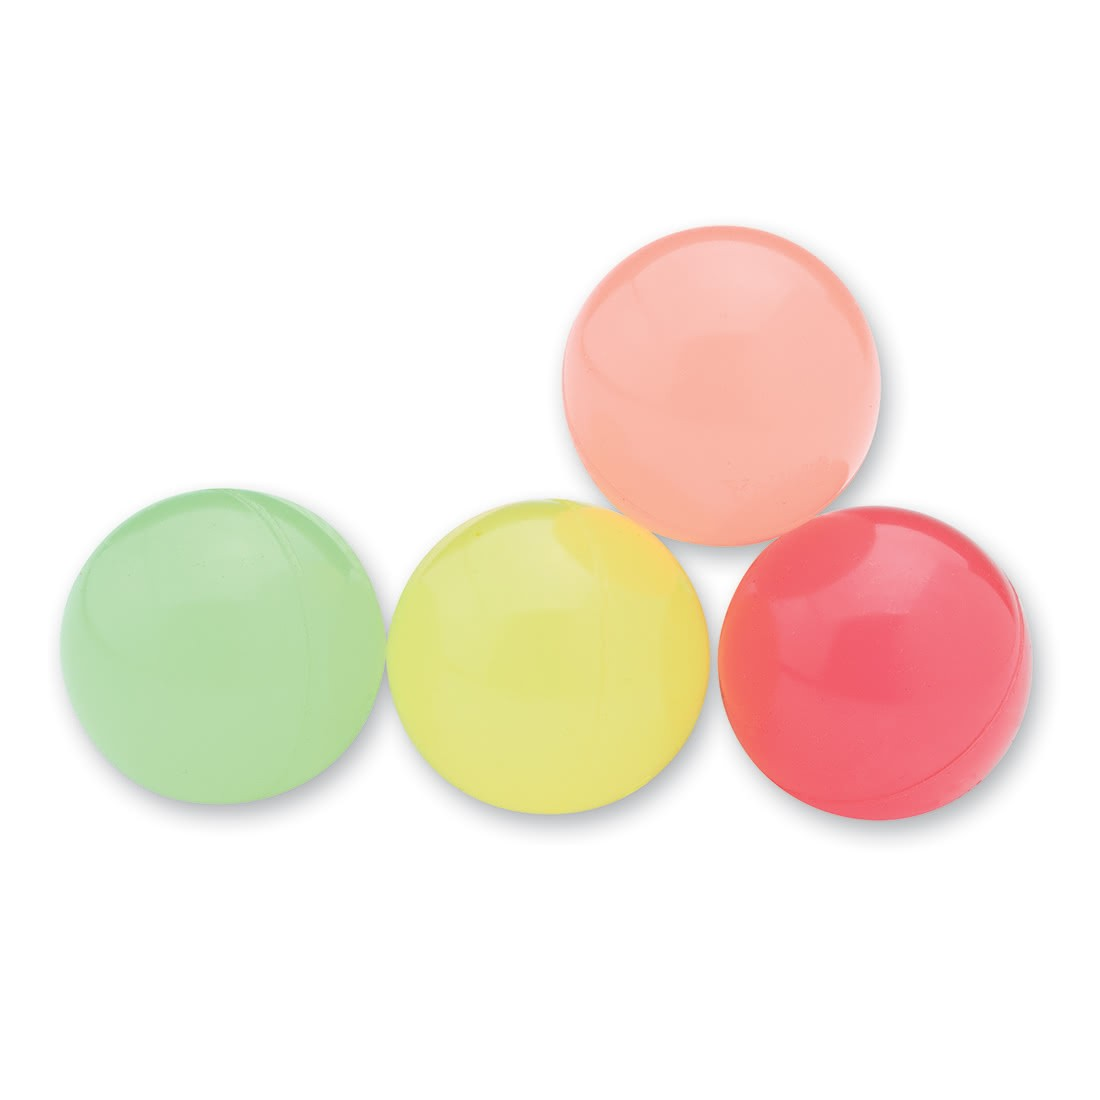 29mm Neon Glow in the Dark Bouncing Balls [image]